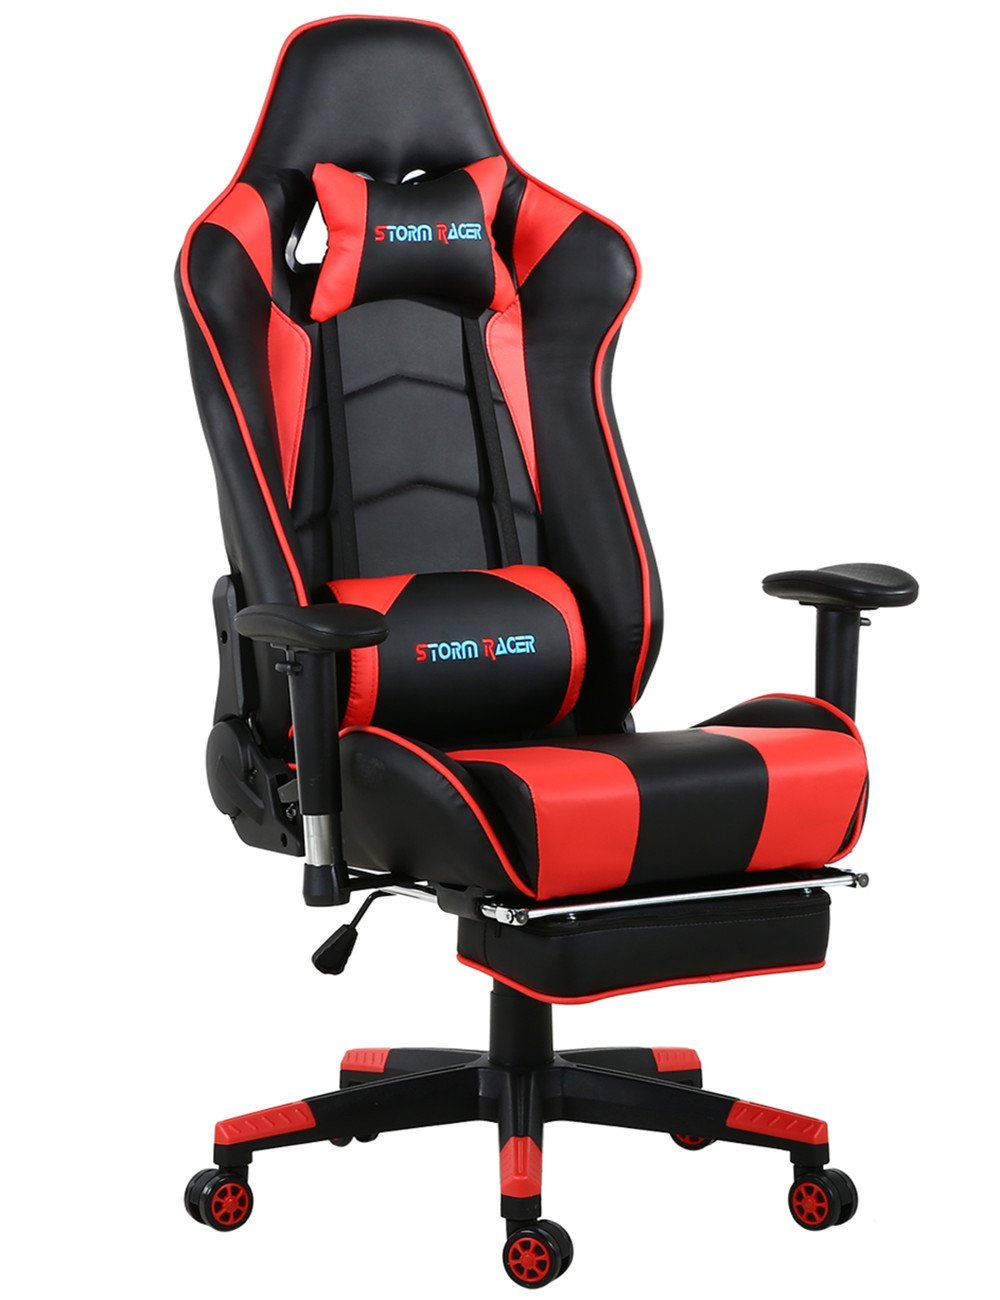 Big Gaming Chair Ergonomic Racing Computer Chair with Footrest,Red/Black